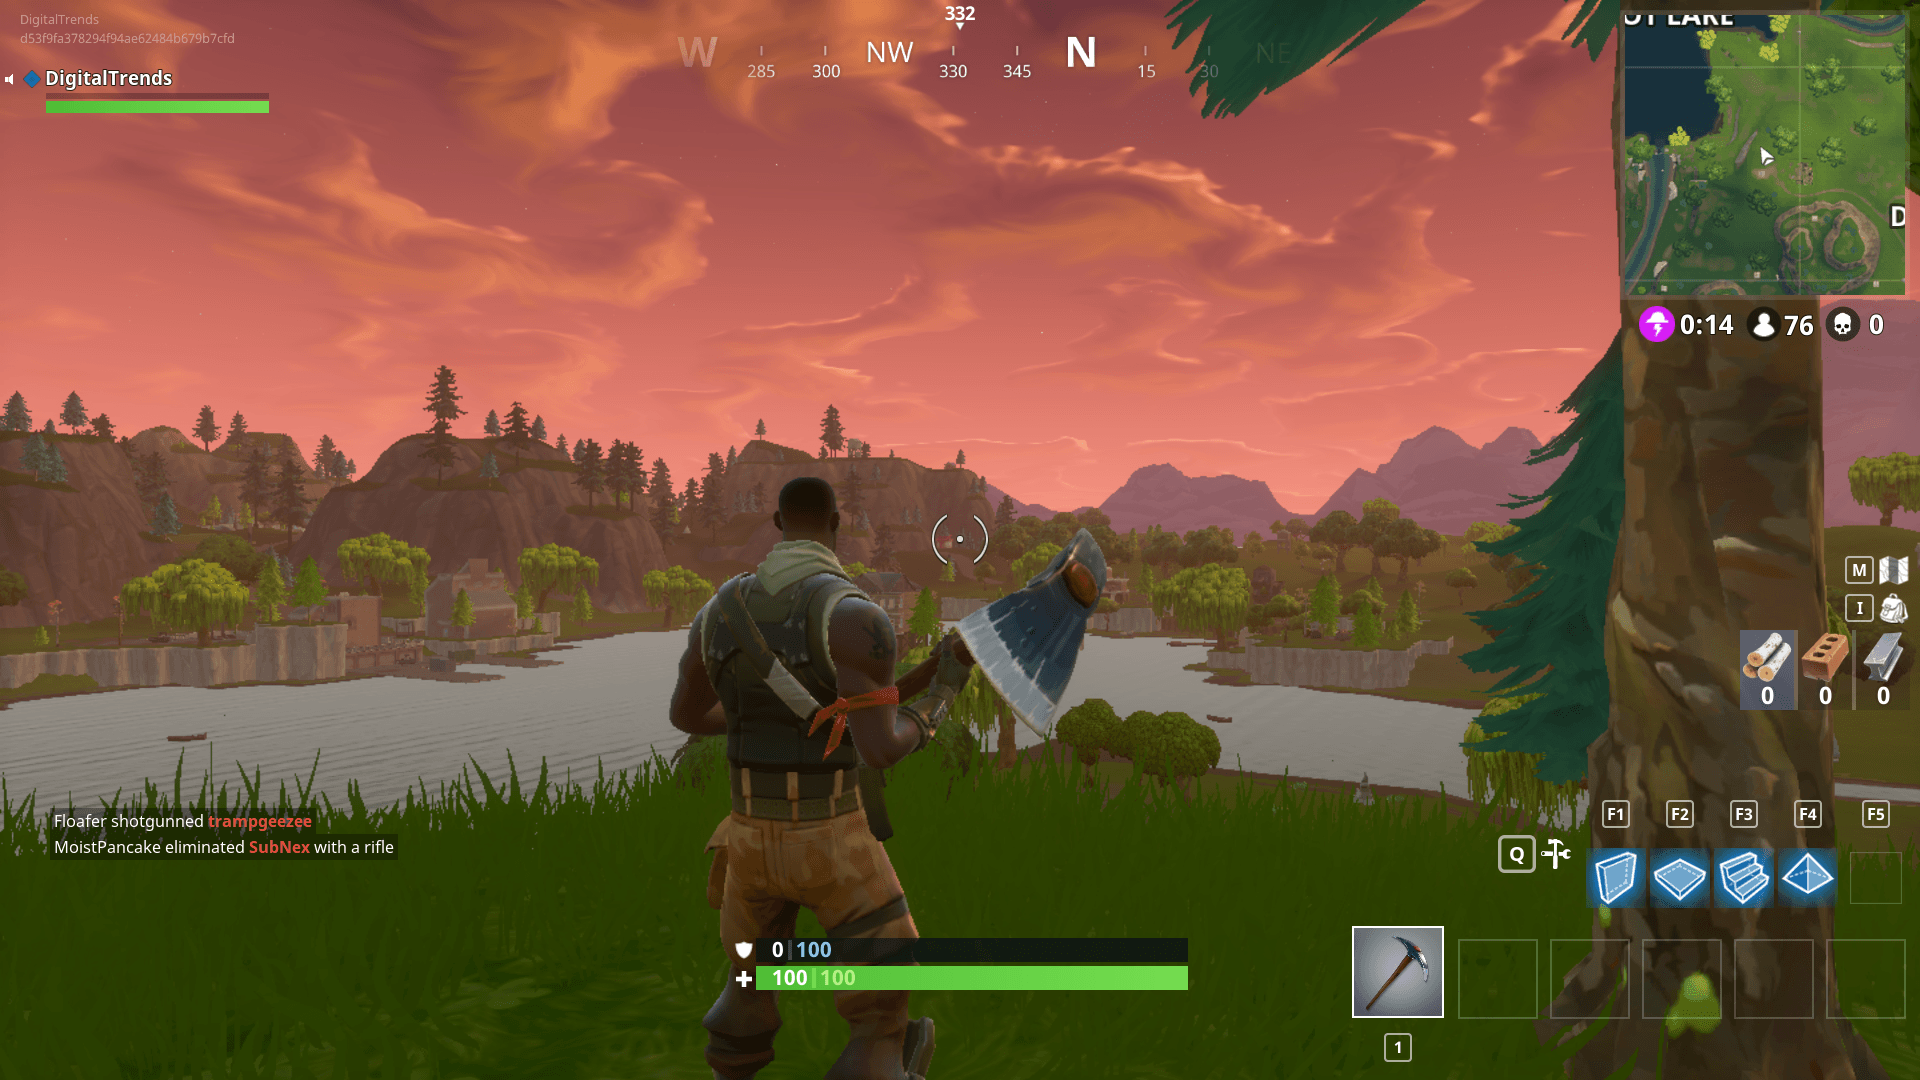 fortnite graphics settings low - fortnite how to reset resolution